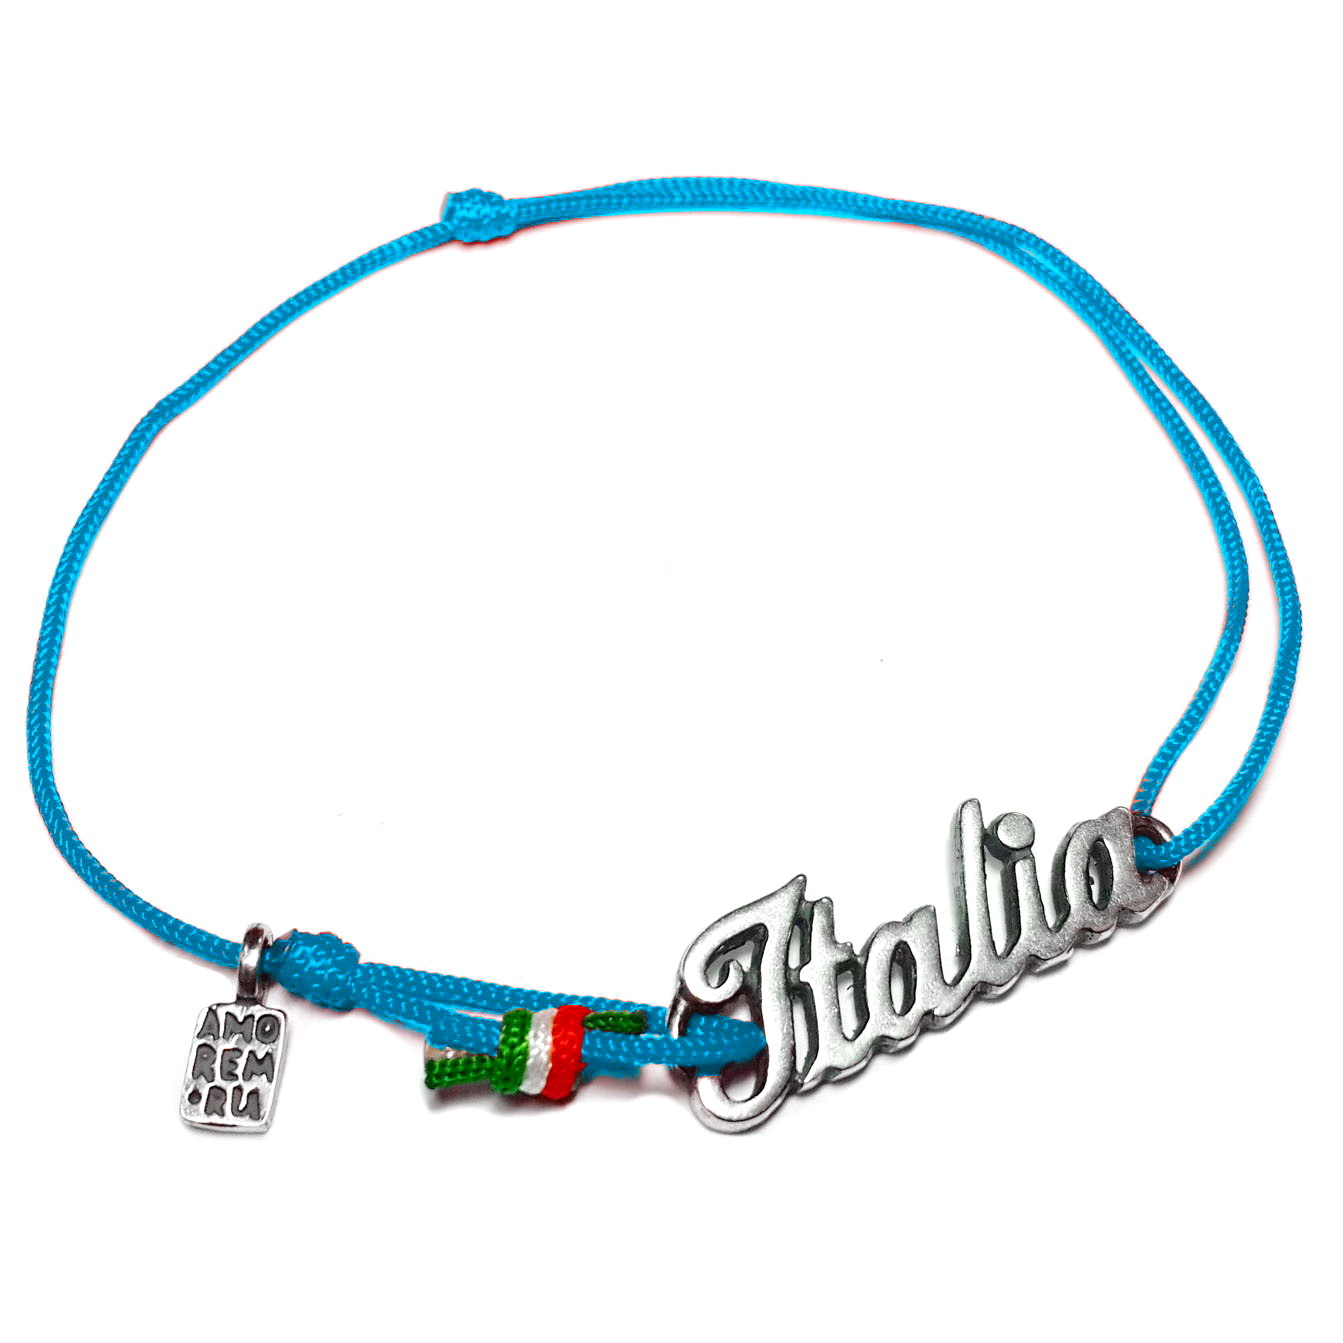 Italy Bracelet, sterling silver charm